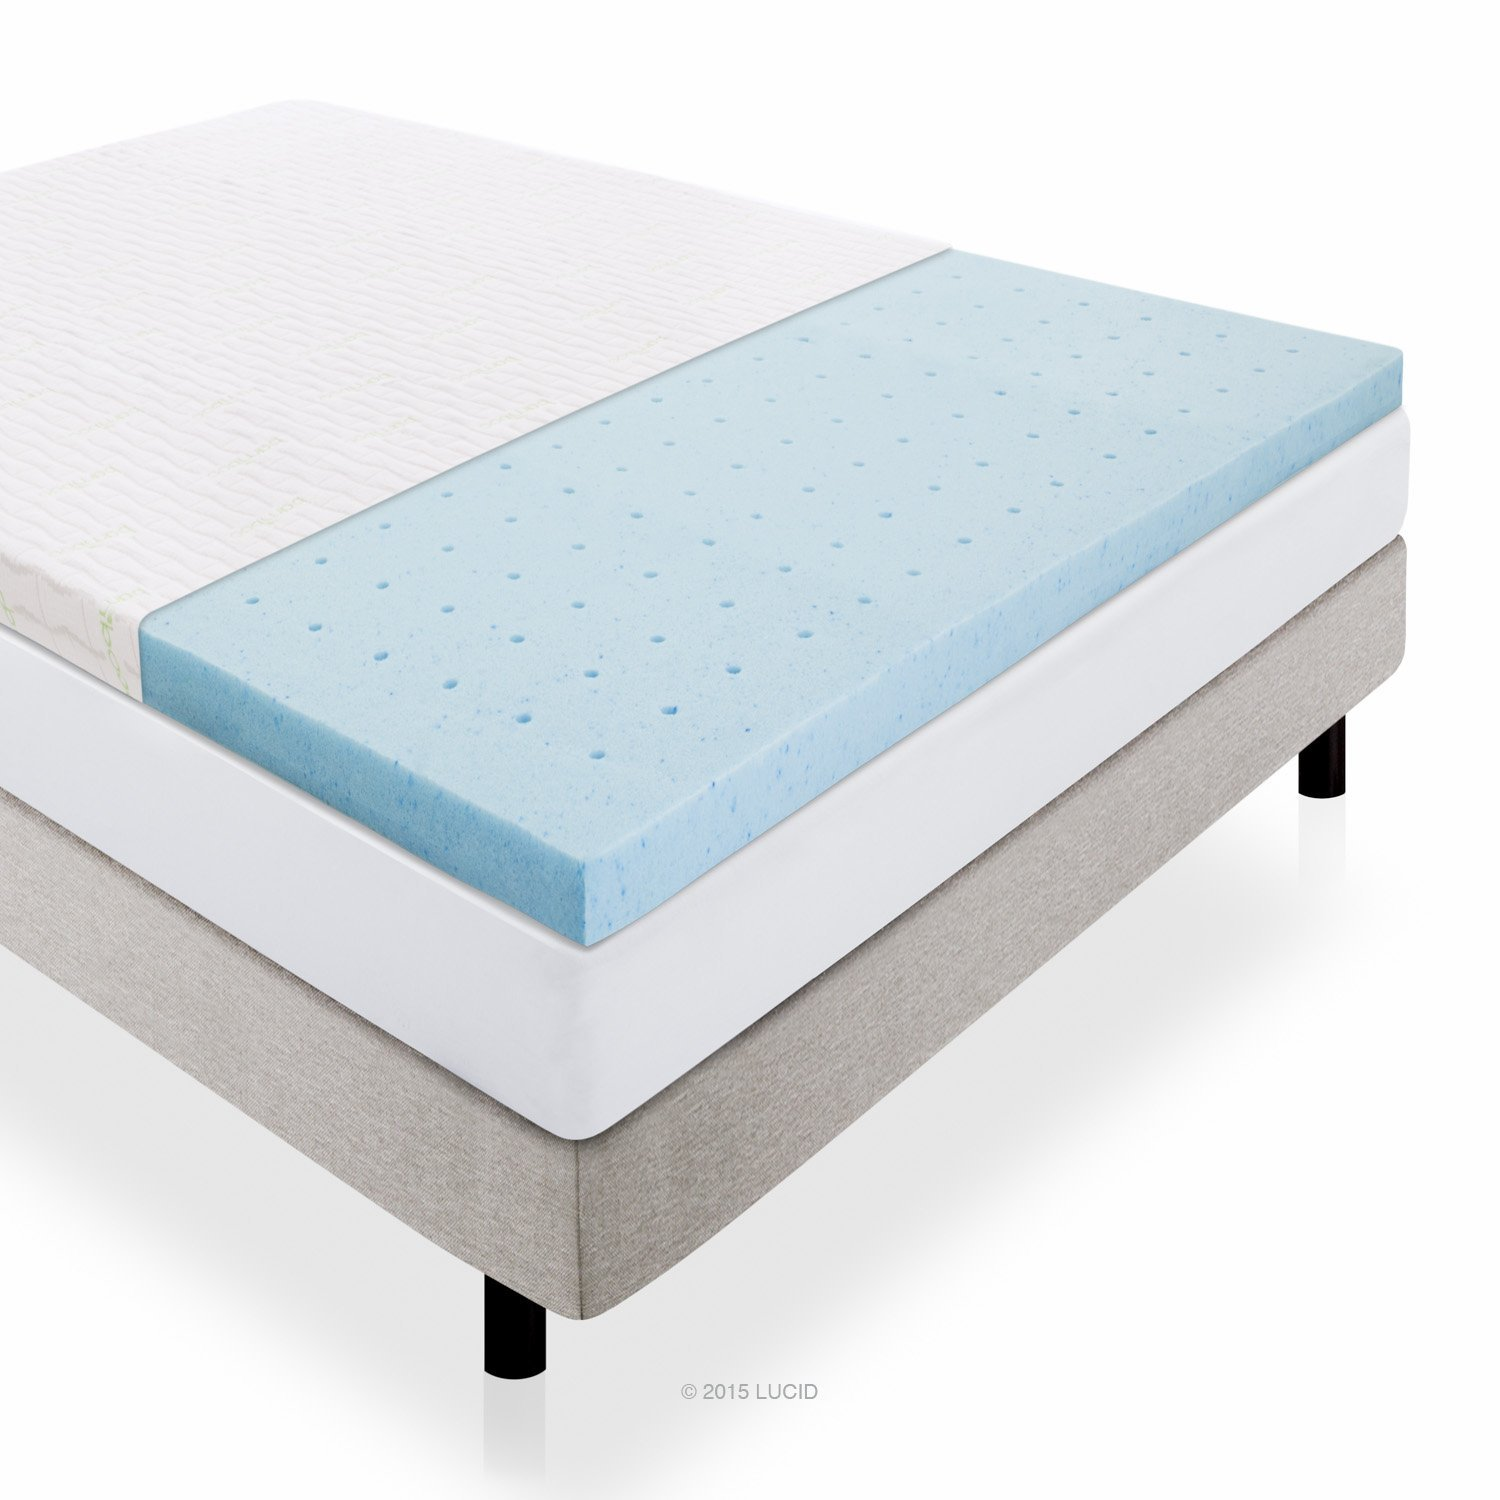 Best Mattress Topper Reviews Top 10 Brands of 2018